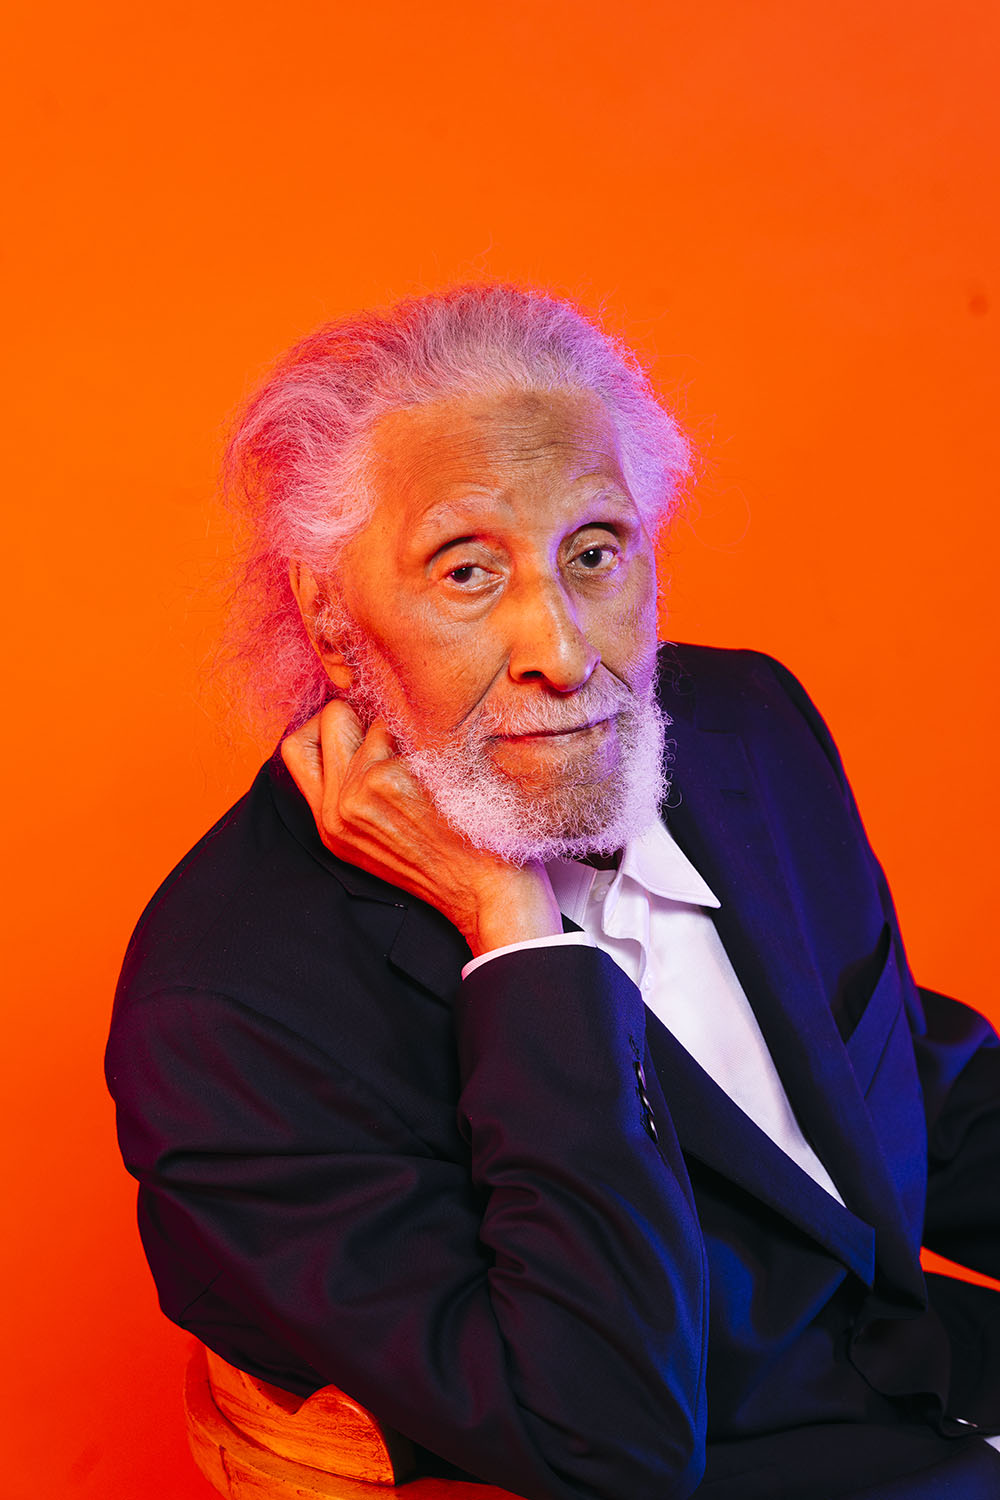 Sonny Rollins: Bright Moments